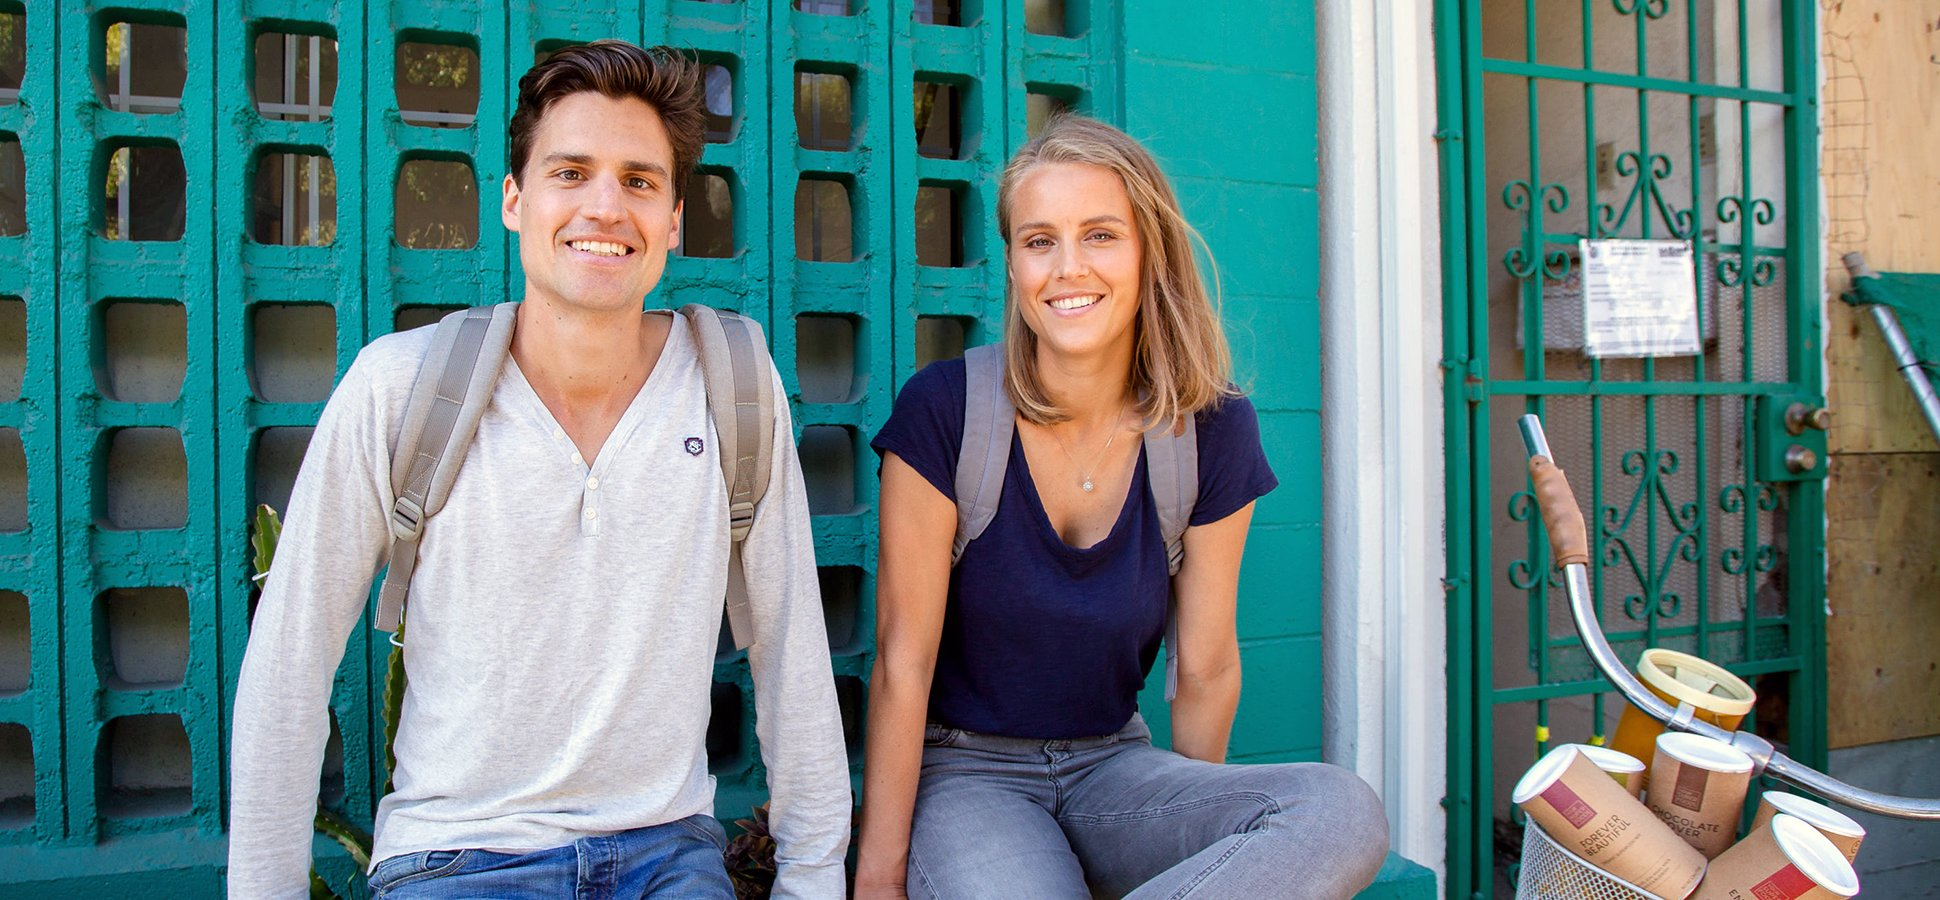 Meet the Couple Behind Your Super, College Tennis Rivals-Turned-Founders